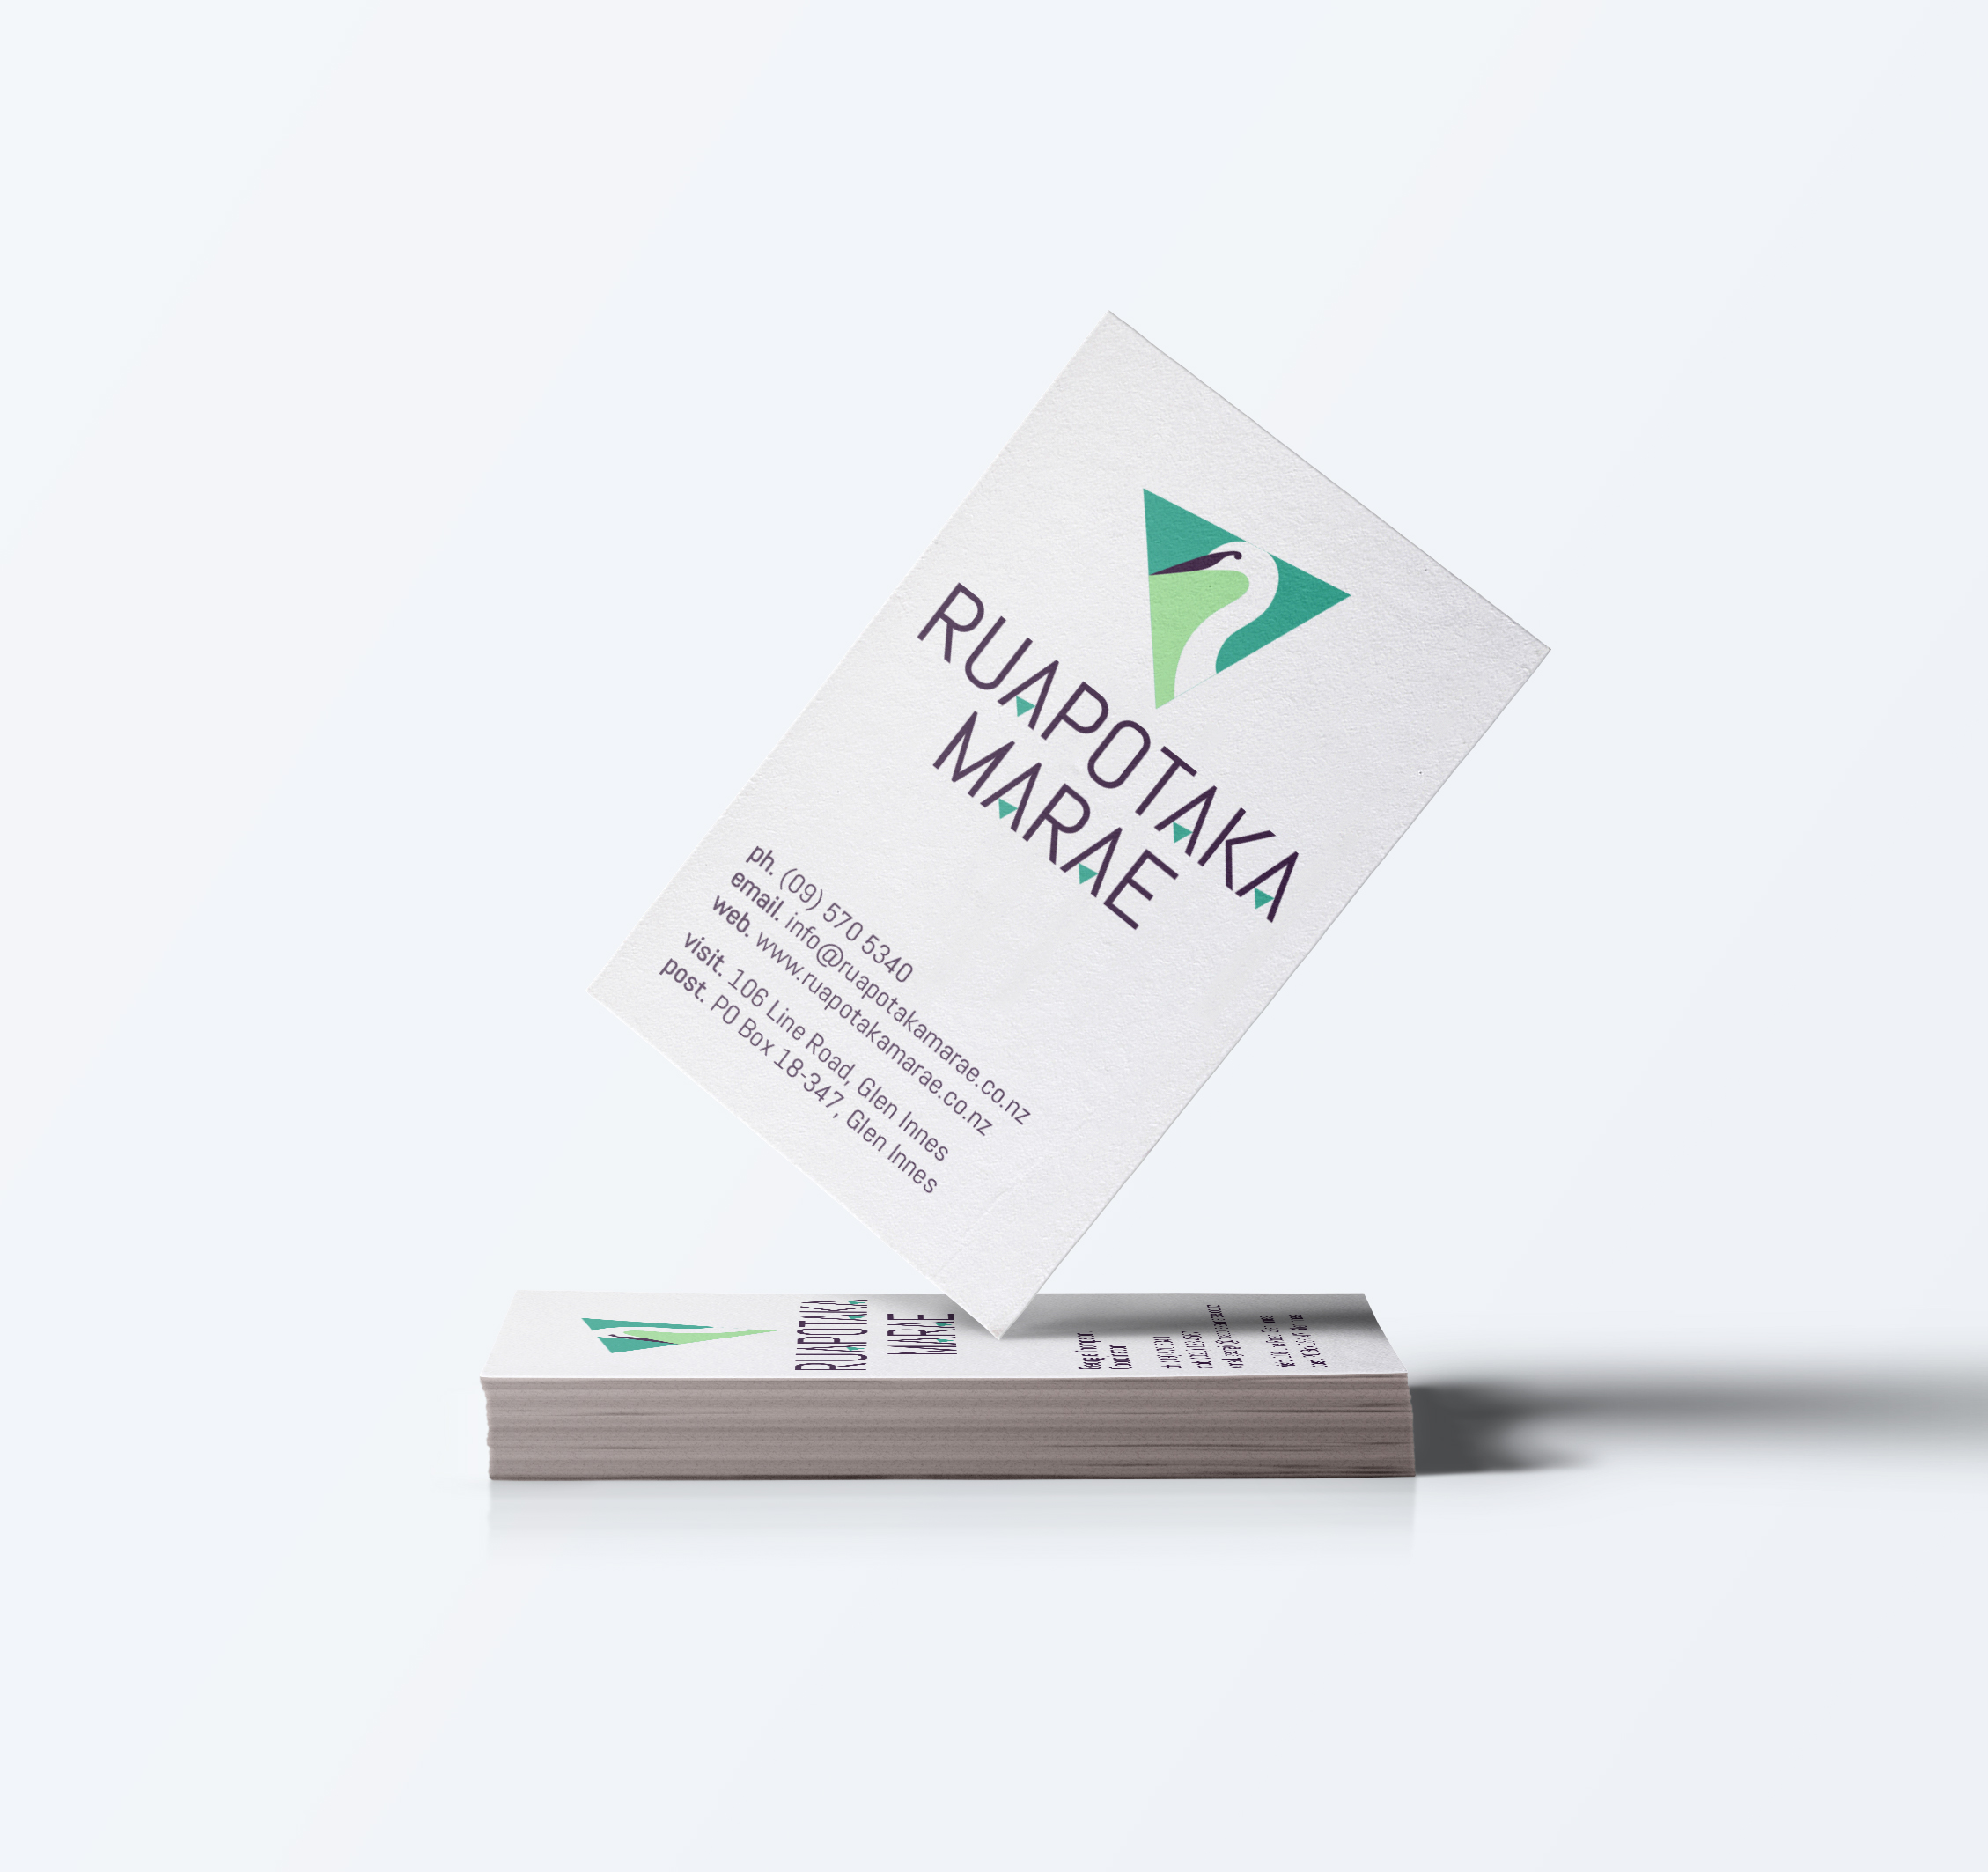 RM Business-Card-Mockup.jpg